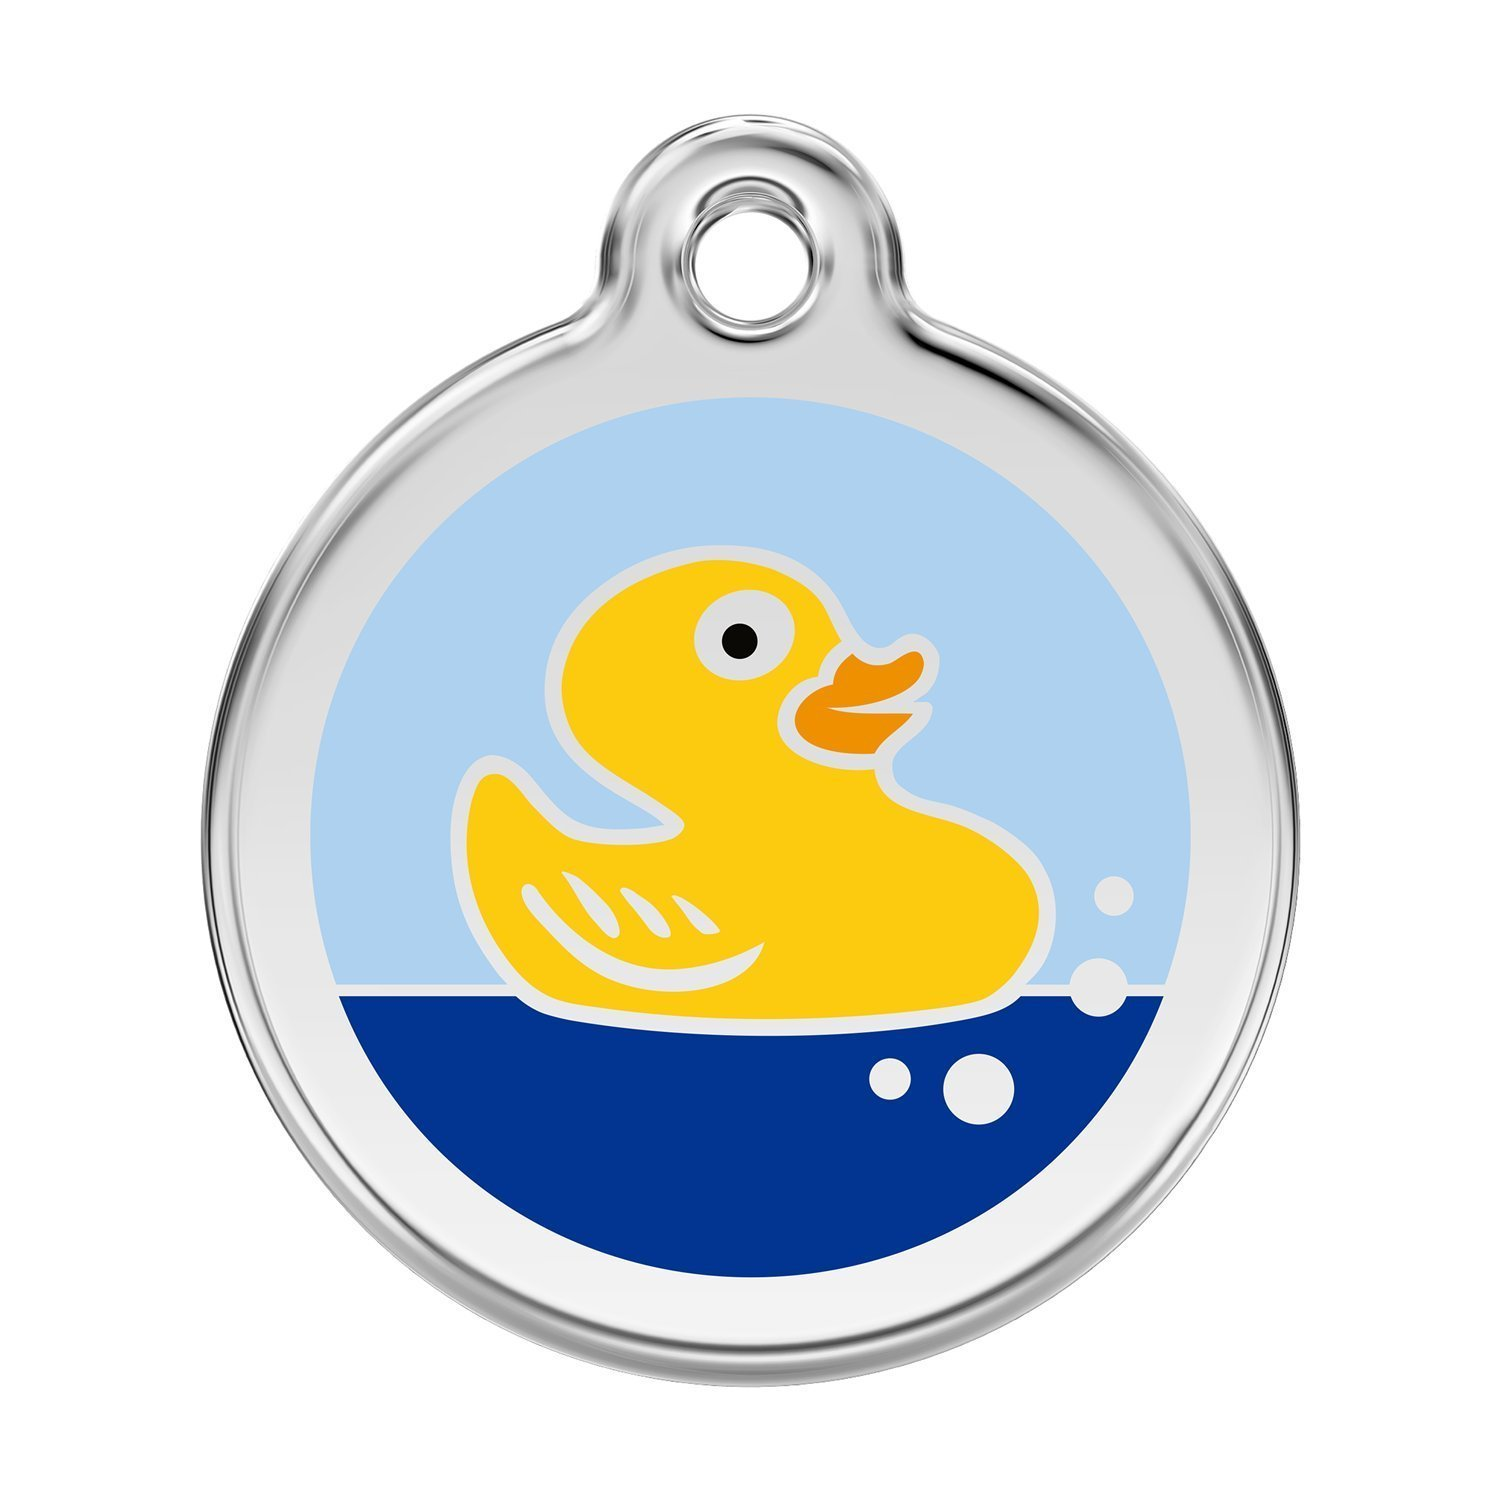 Large Red Dingo Stainless Steel with Enamel Pet I.D. Tag Rubber Duck (large)